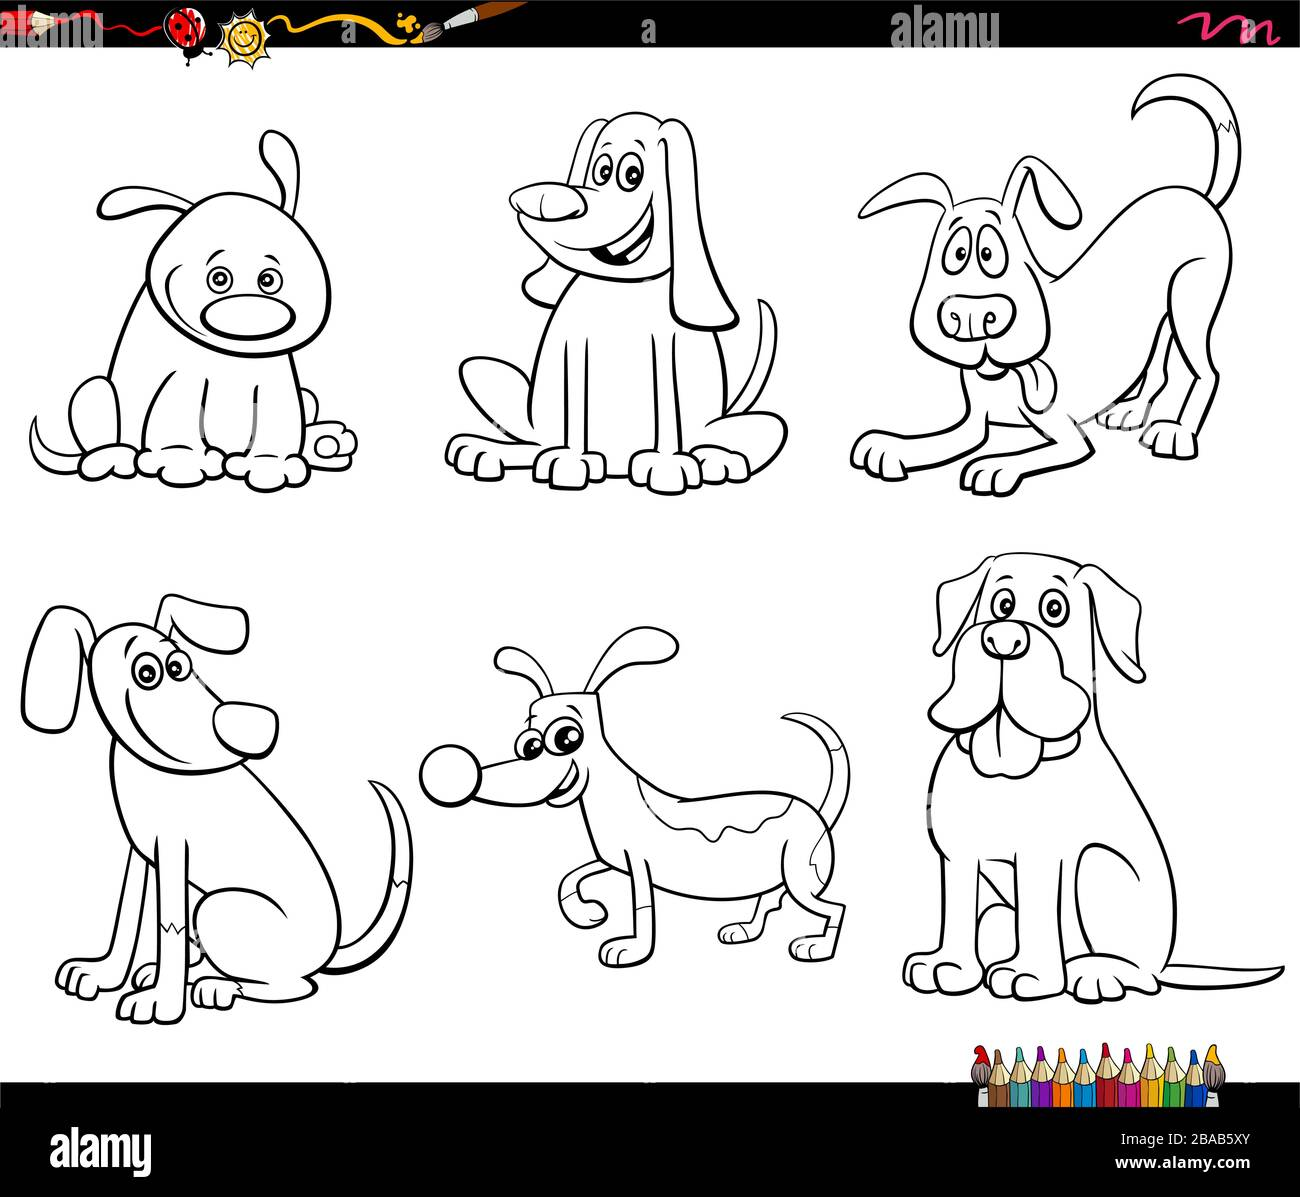 Black And White Cartoon Illustration Of Dogs And Puppies Cute Animal Characters Set Coloring Book Page Stock Vector Image Art Alamy